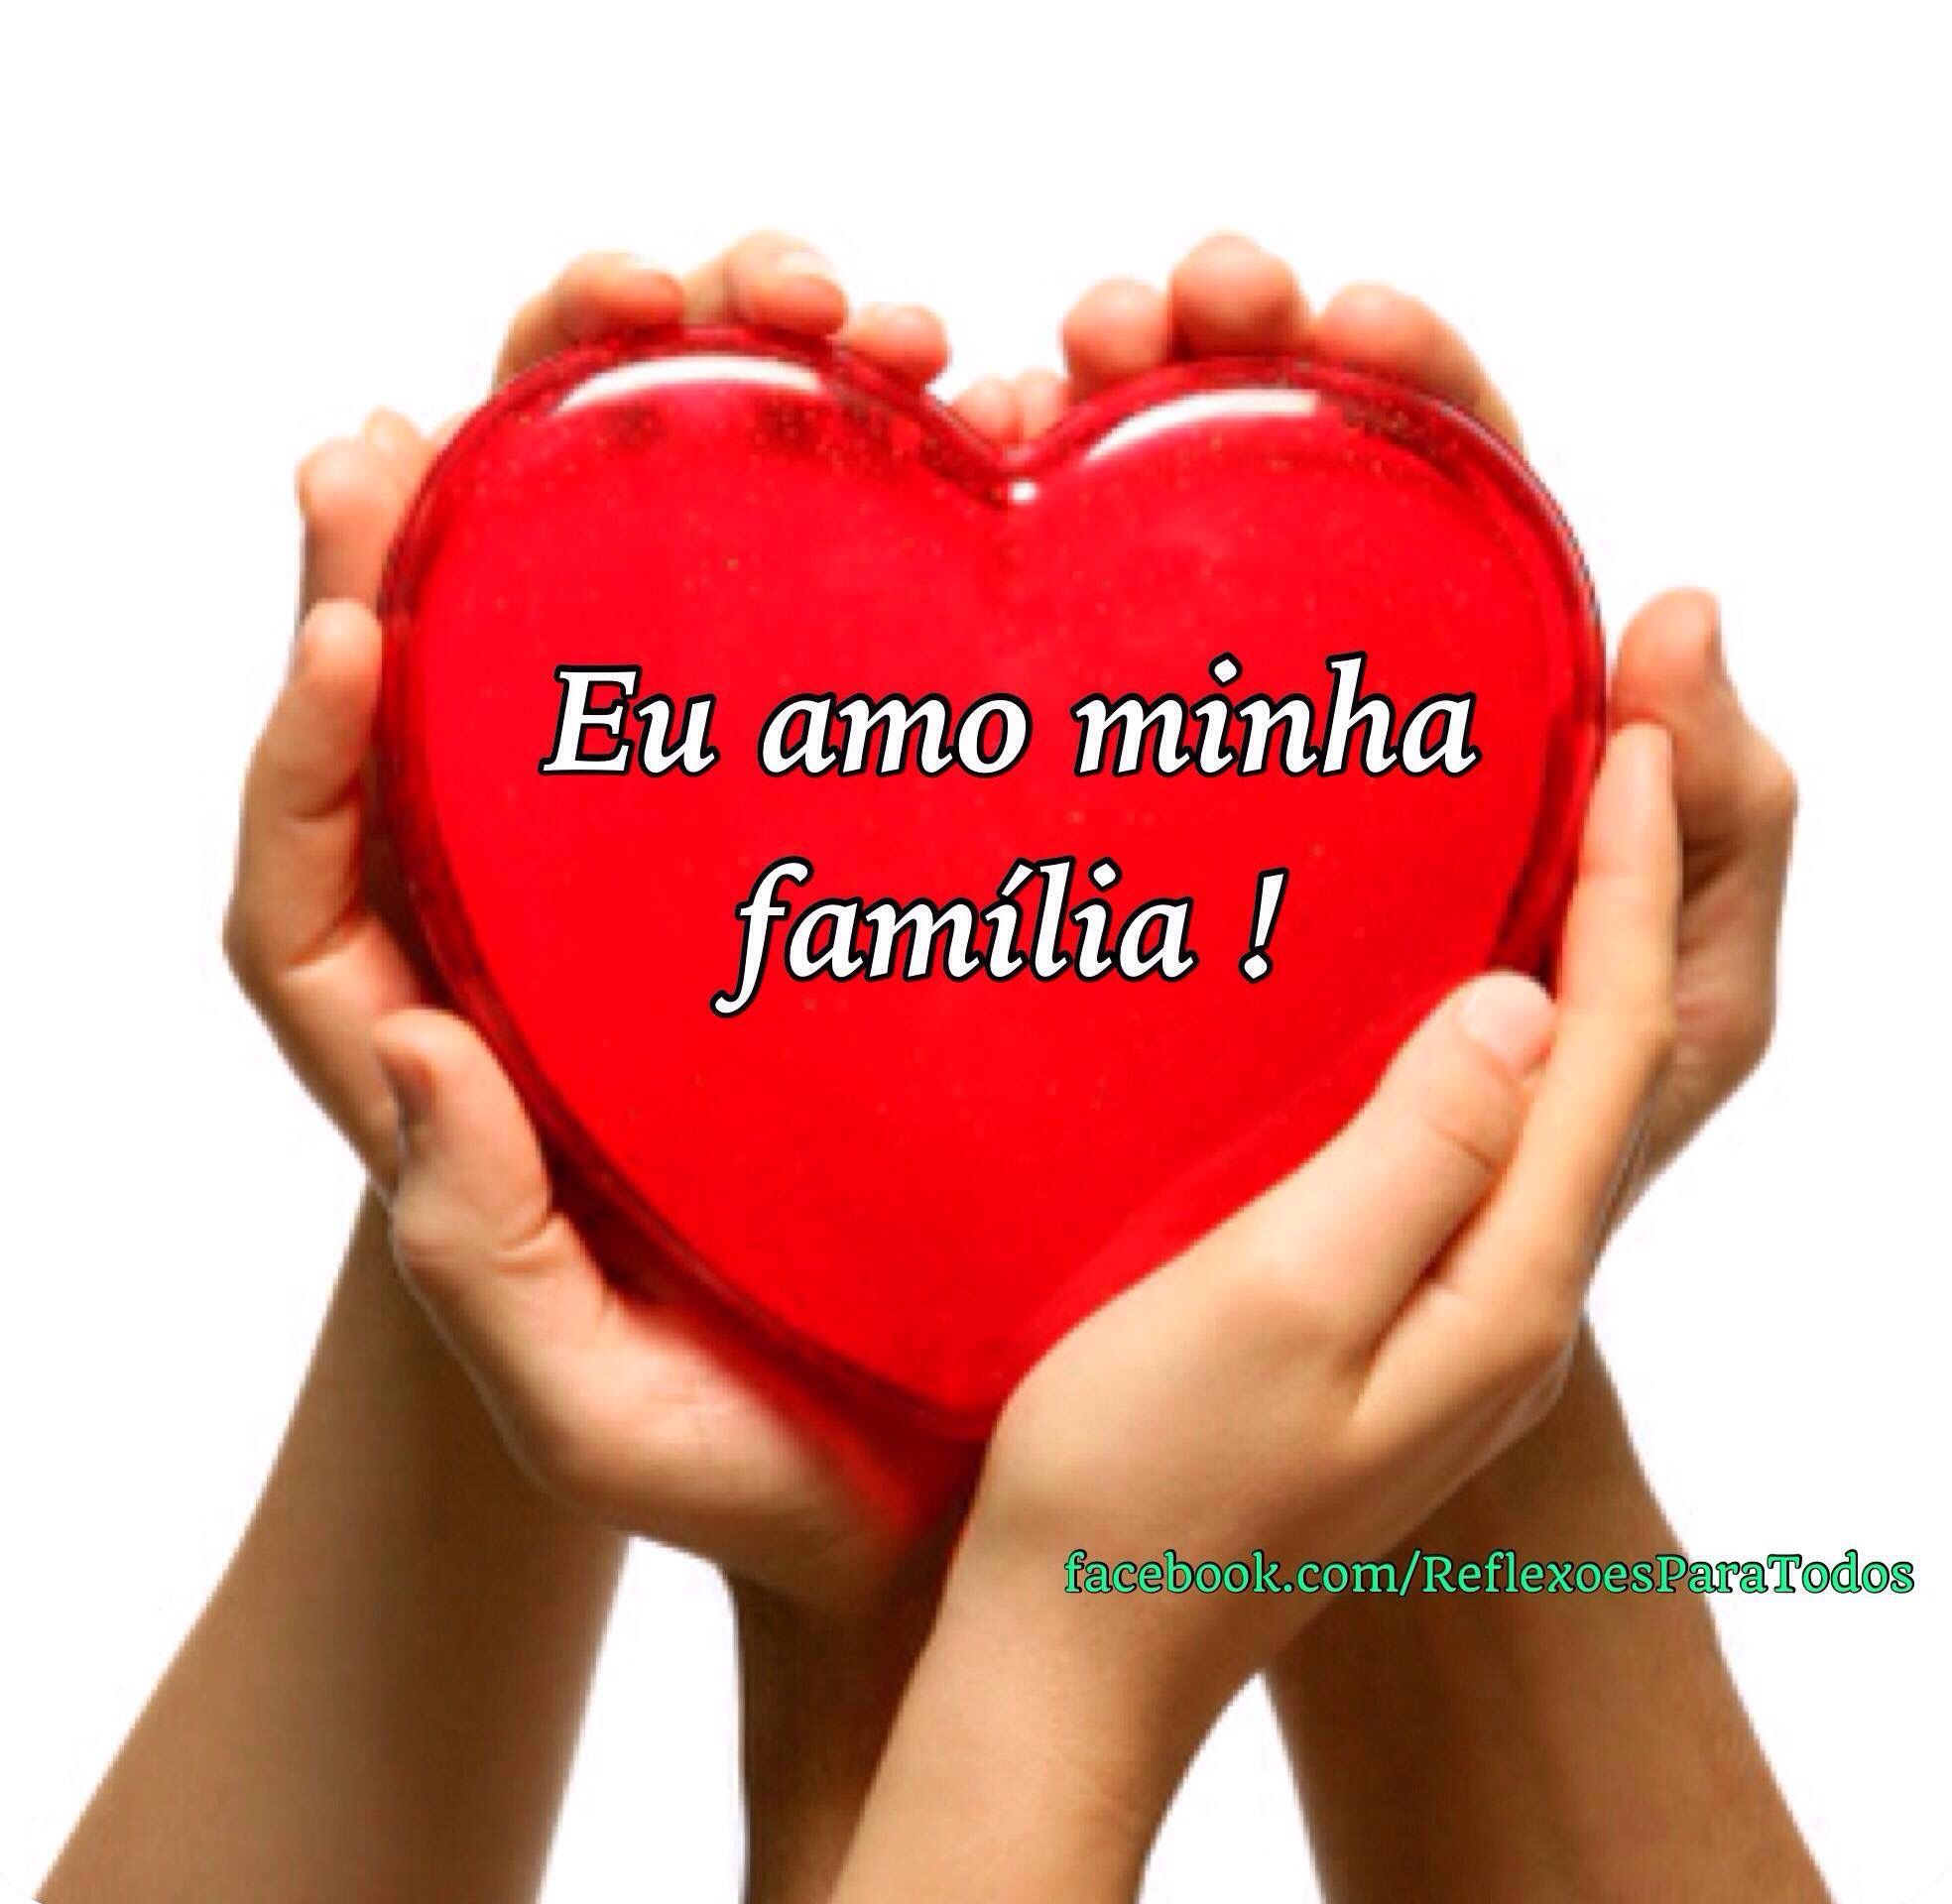 Eu amo minha famlia amor eu amo minha famlia altavistaventures Image collections